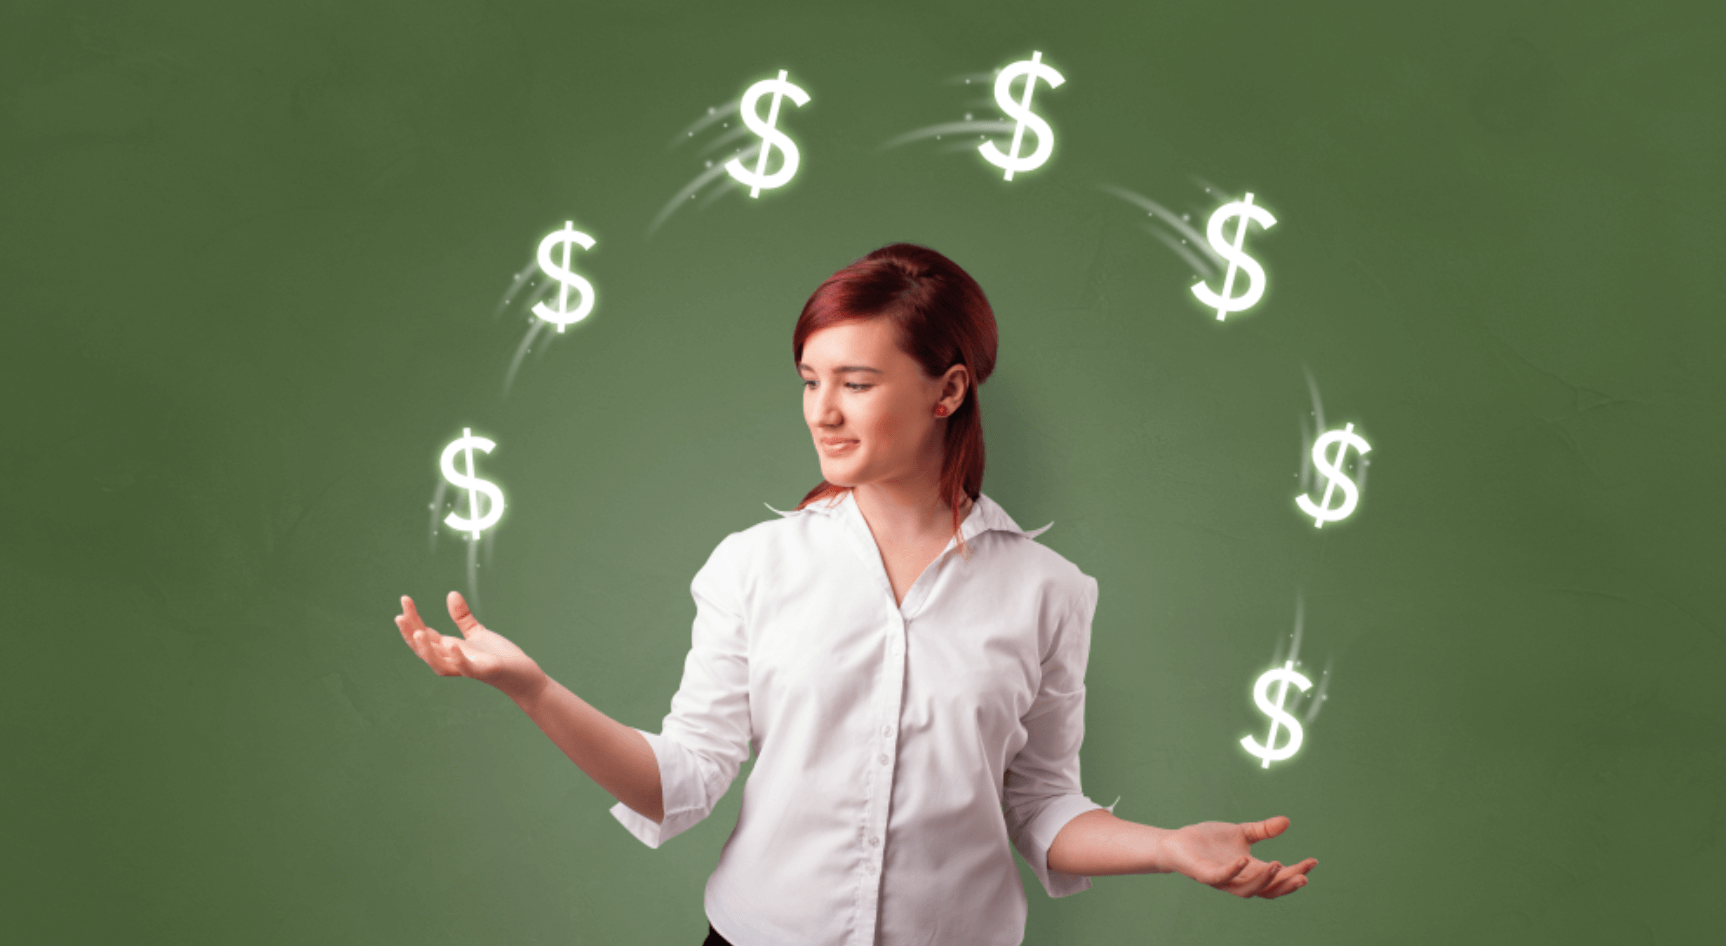 woman juggling dollar signs